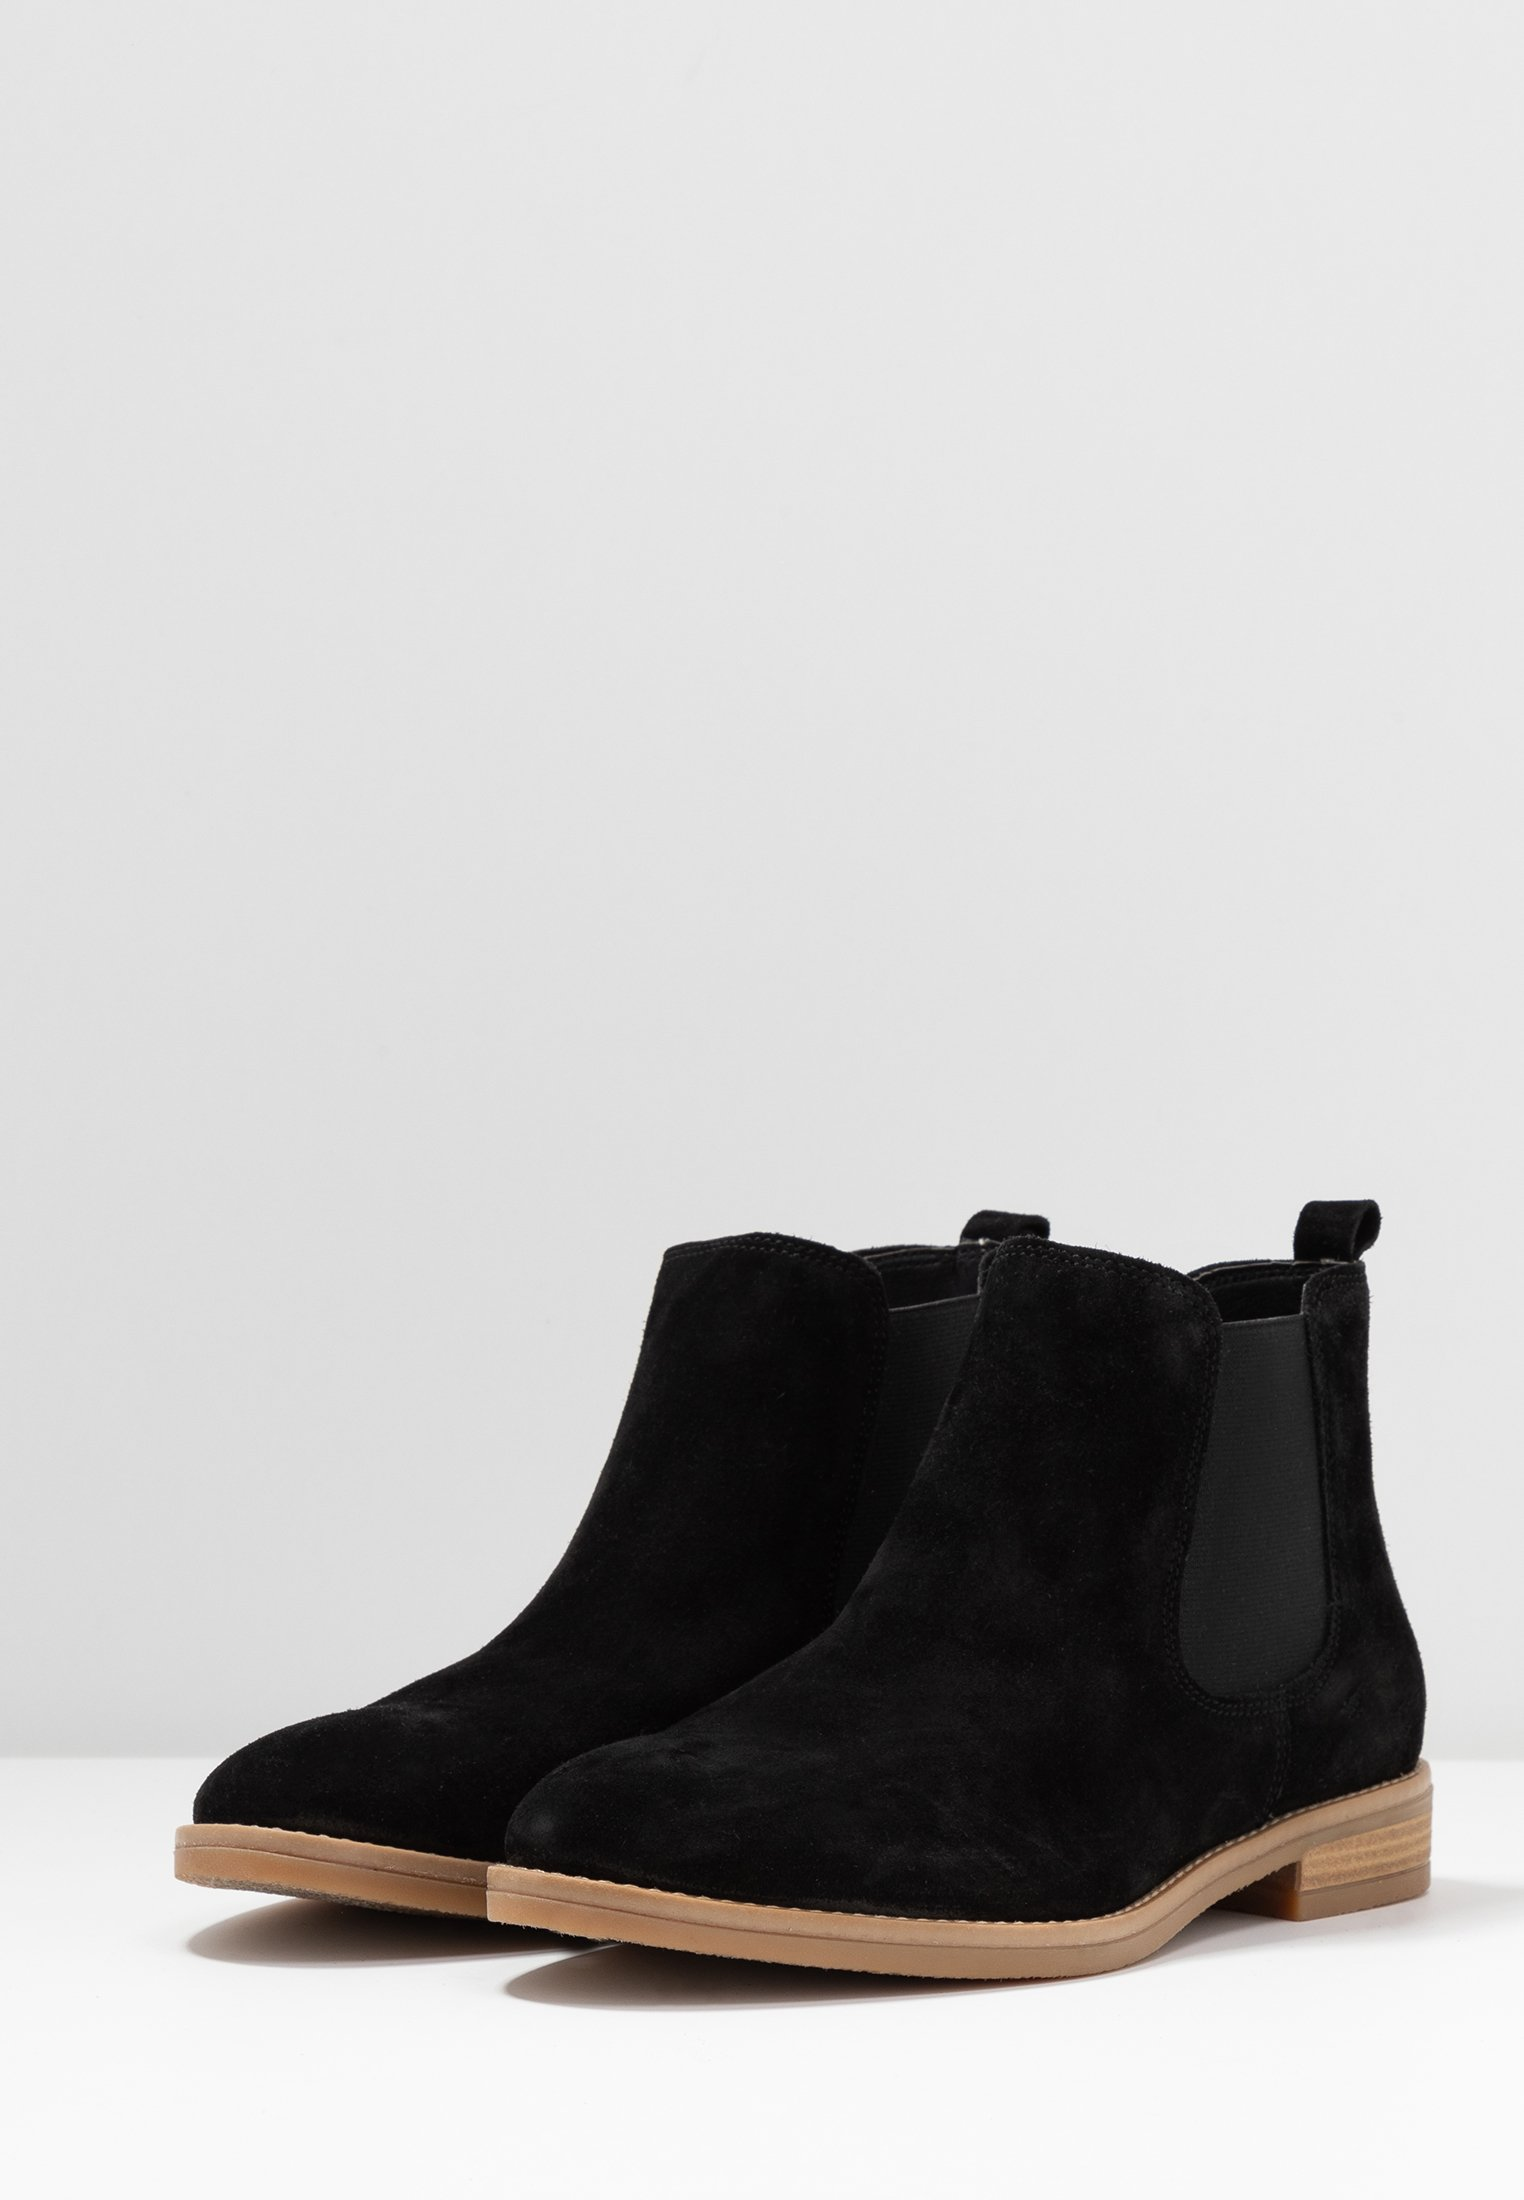 Anna Field Leather Booties - Boots À Talons Black